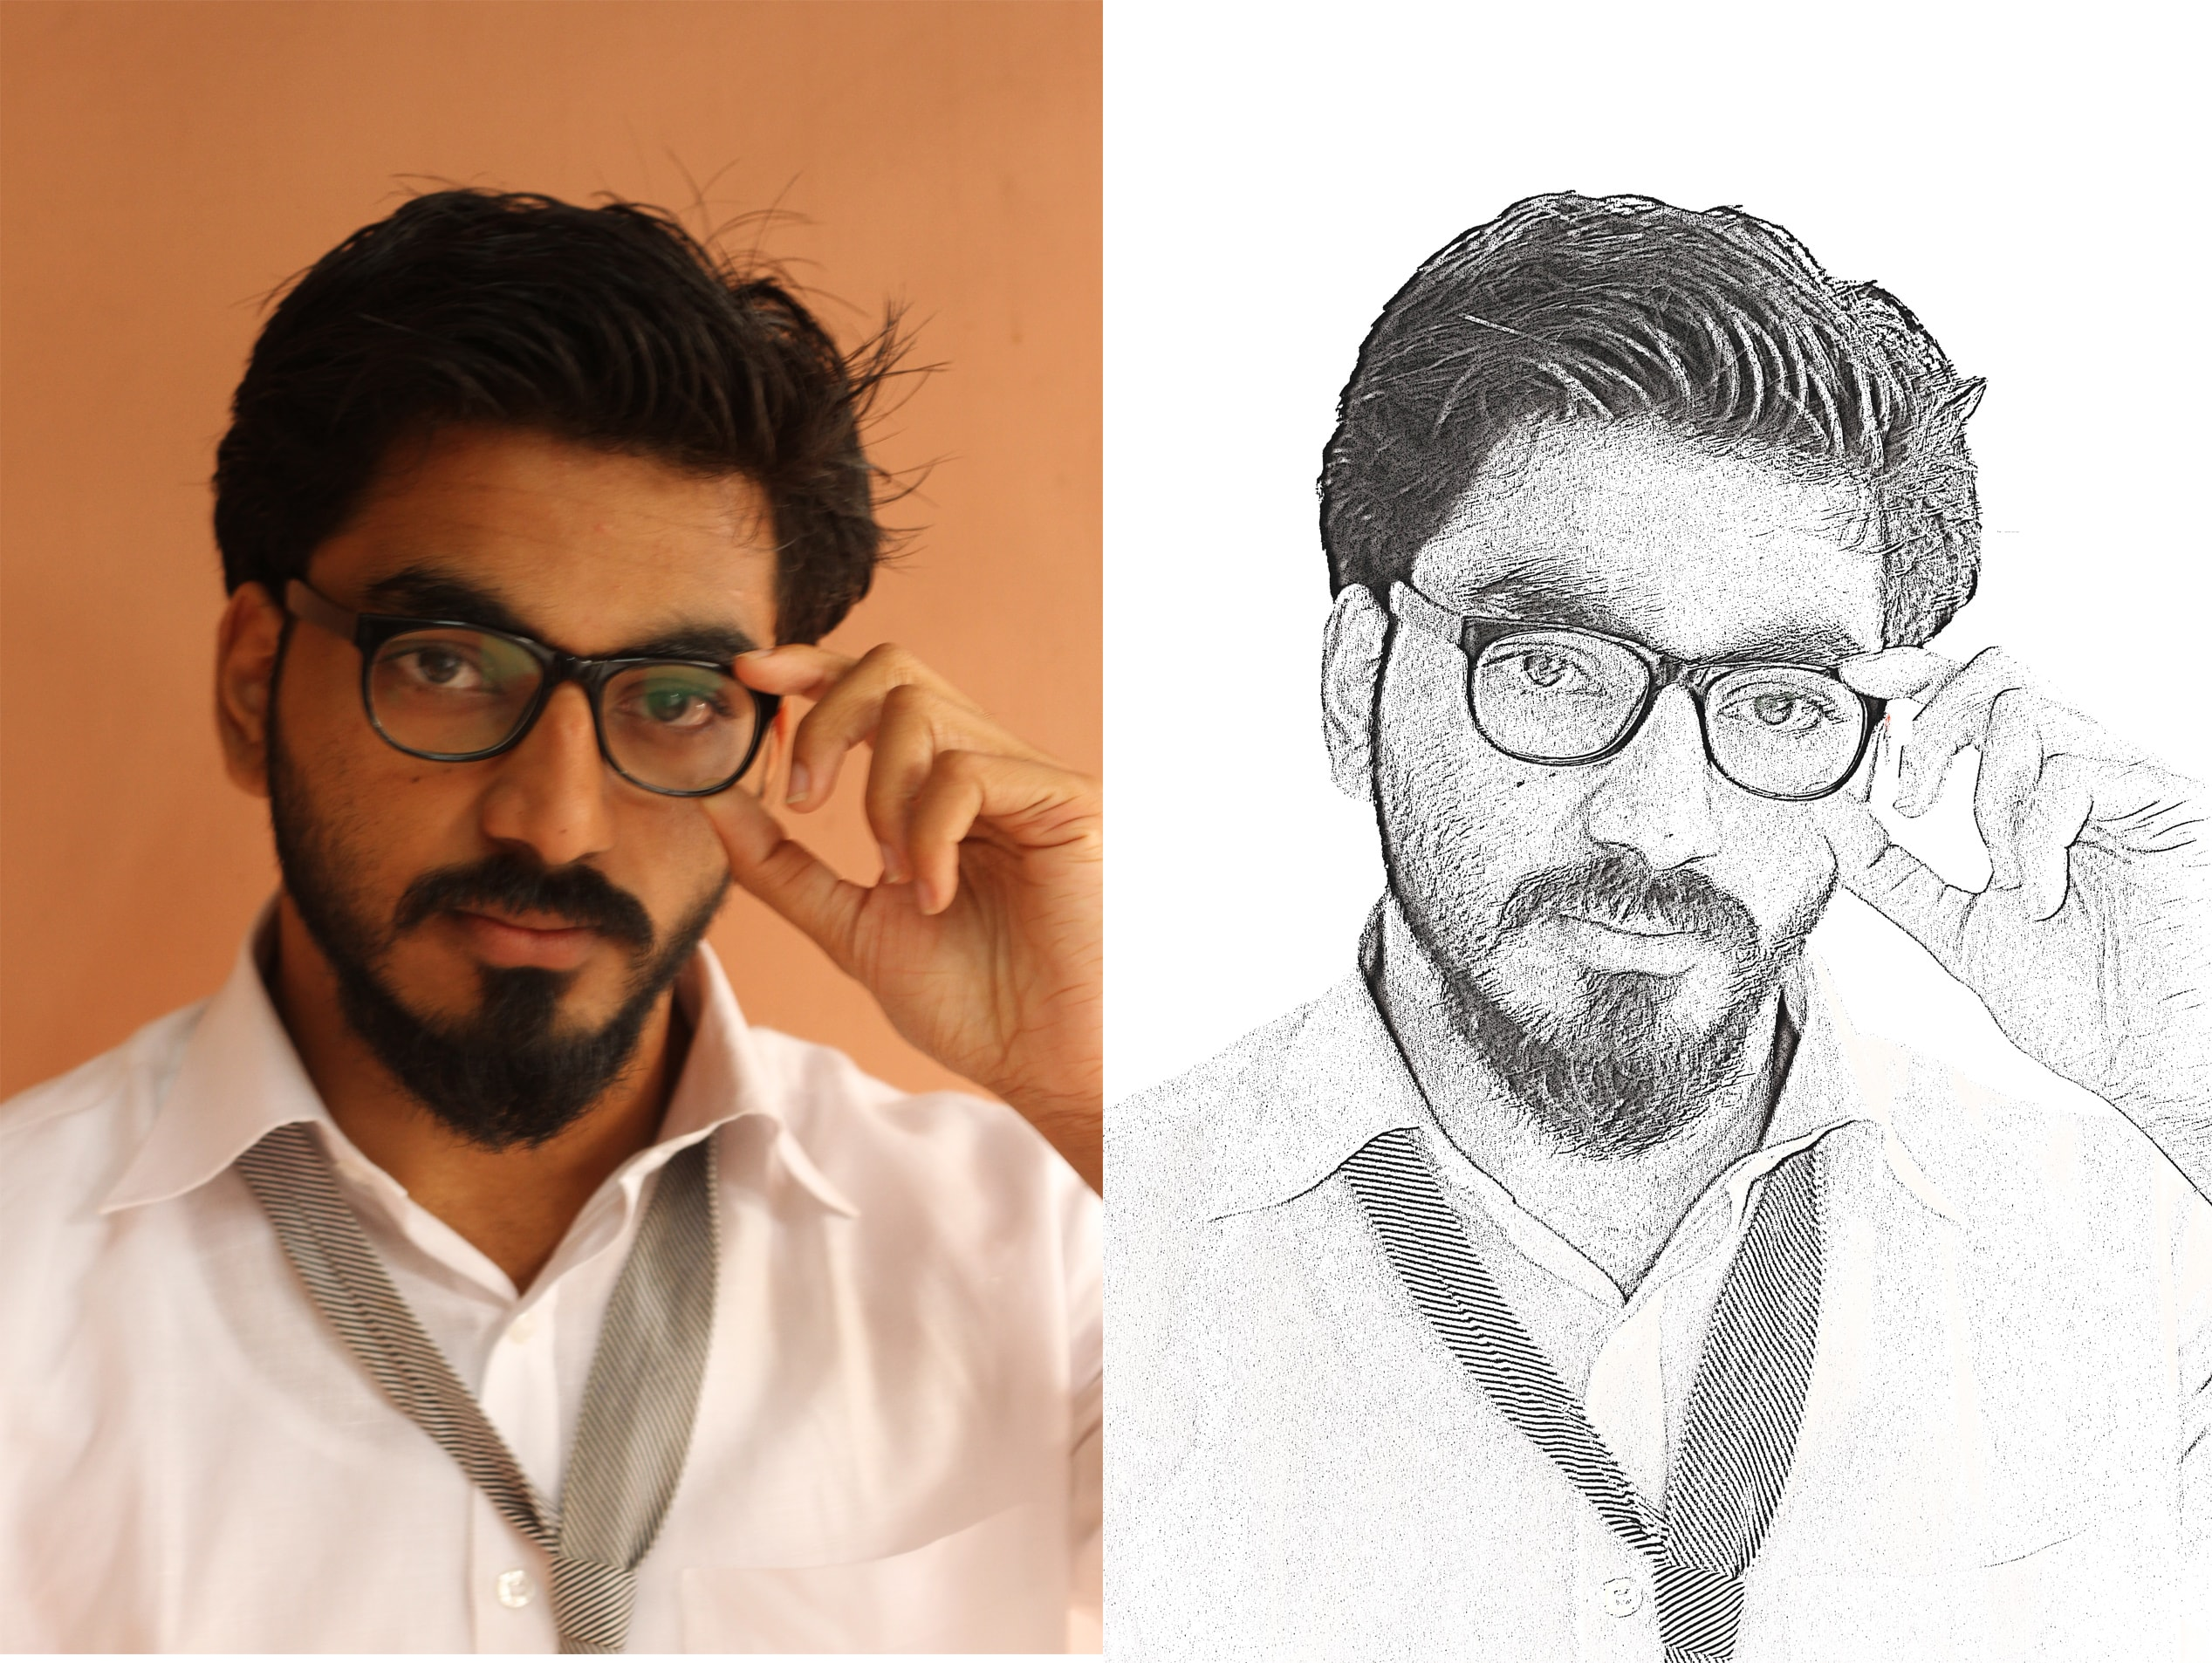 I will make a beautiful pencil sketch out of your photo